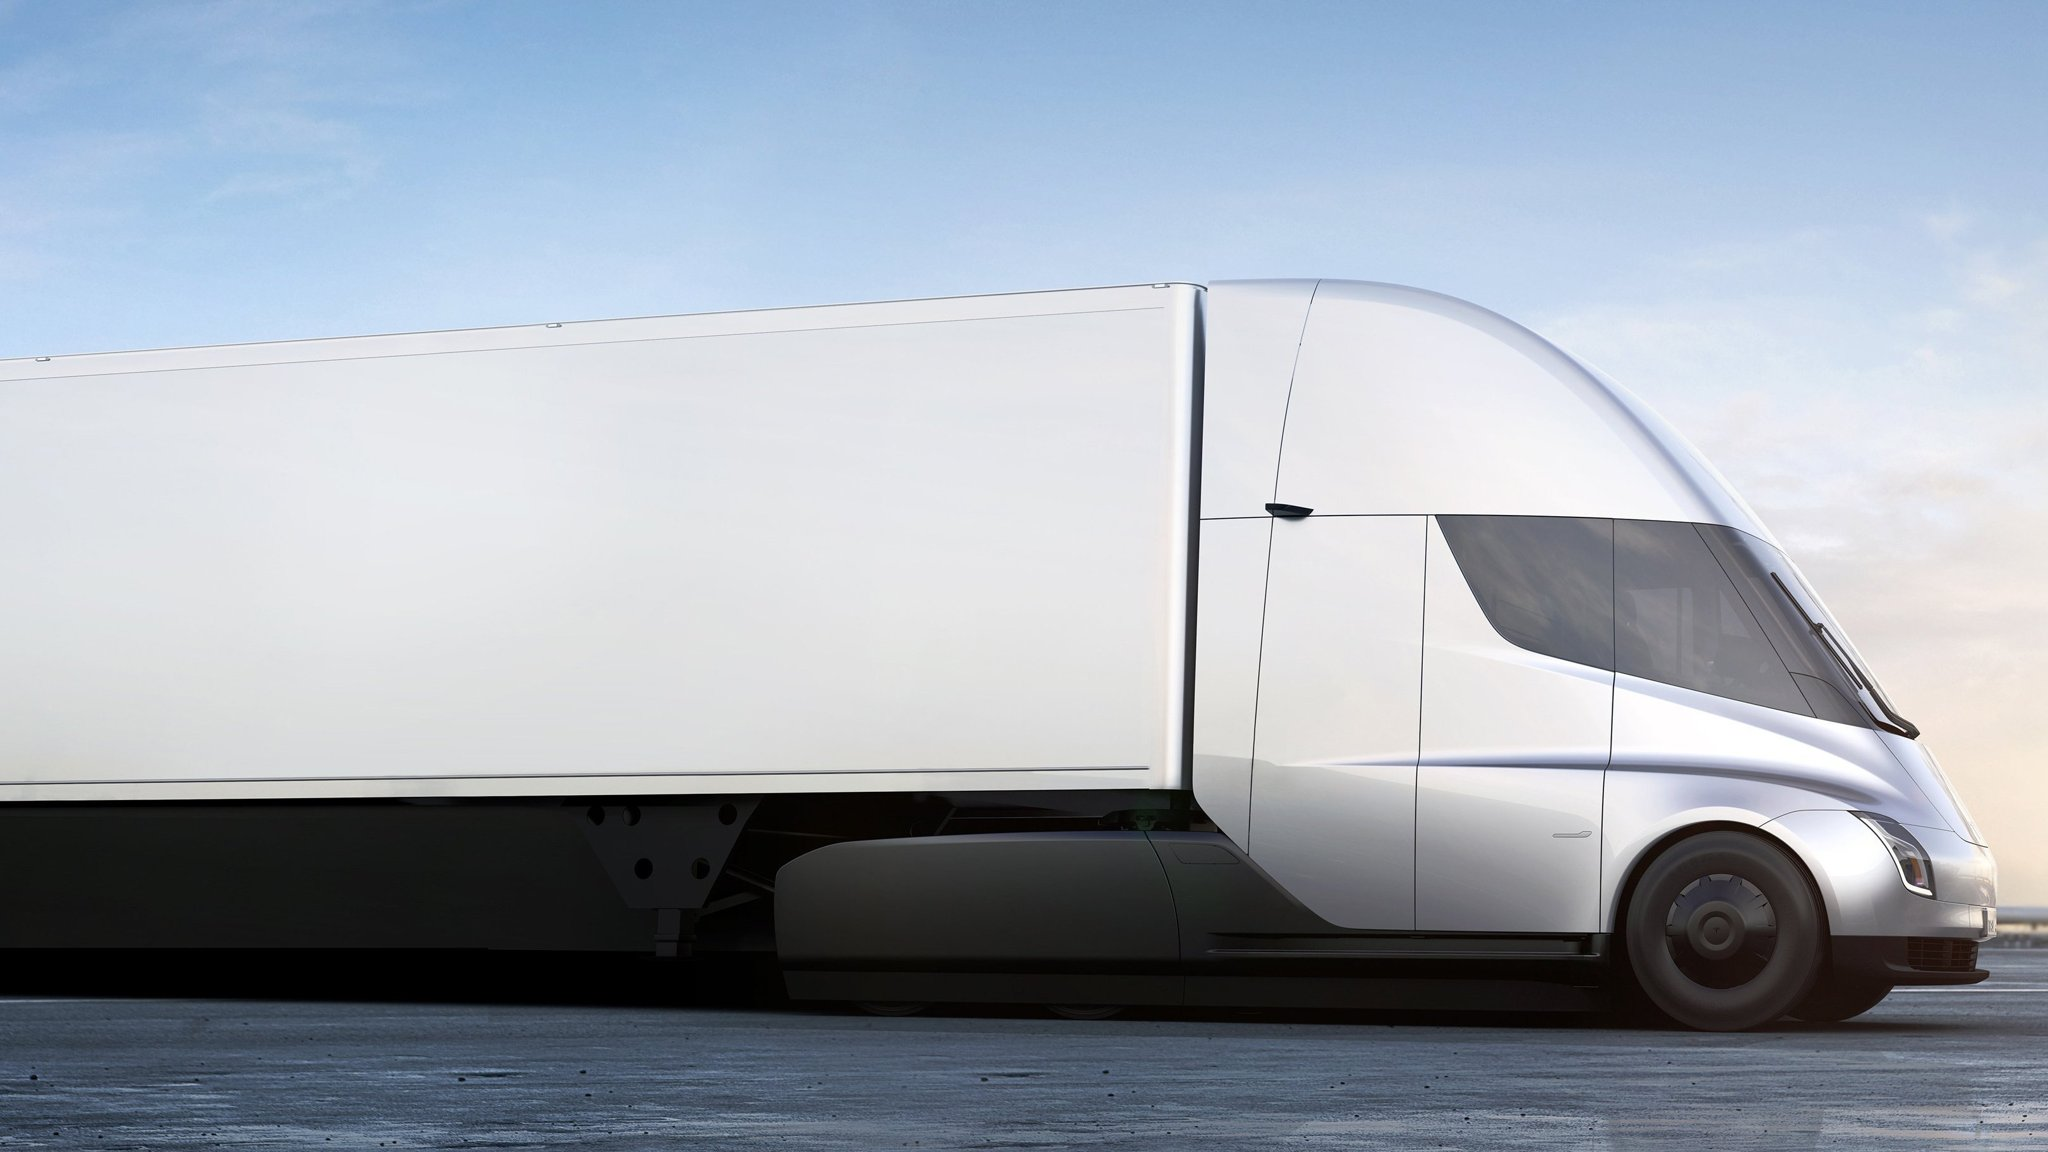 Tesla truck will need same energy as 4,000 homes to recharge